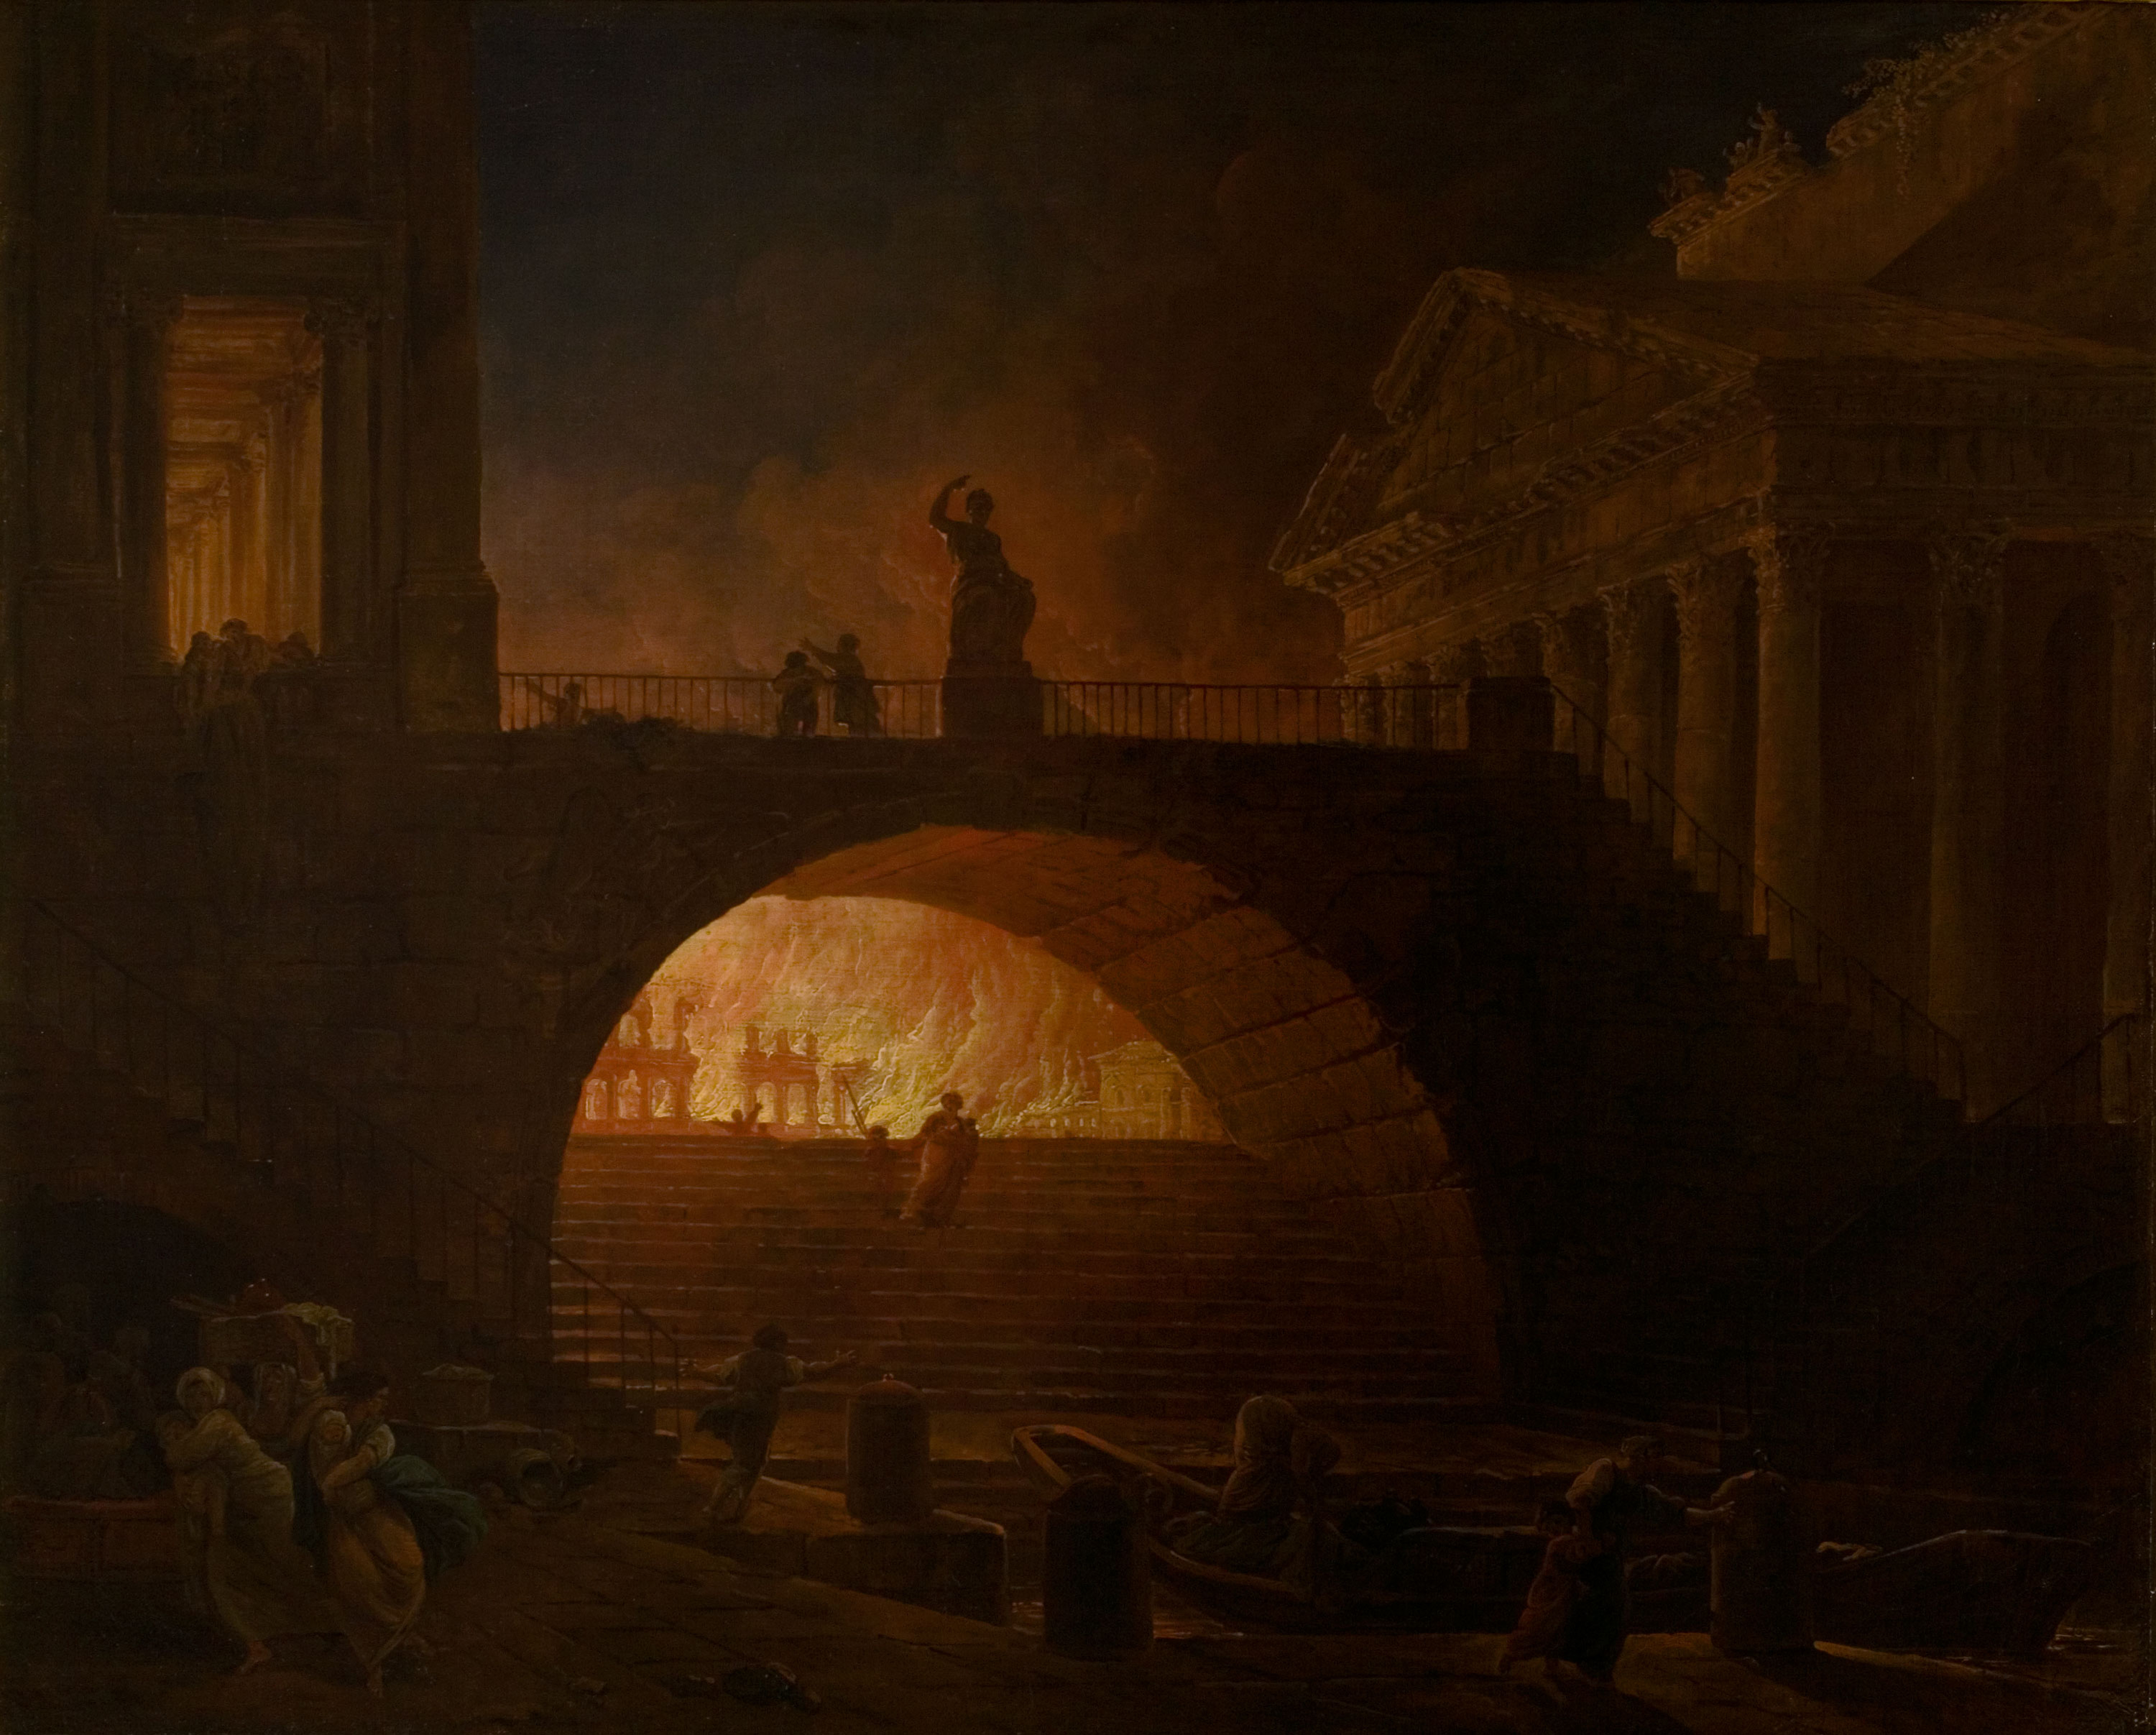 Did Nero really fiddle while Rome burned? - HISTORY